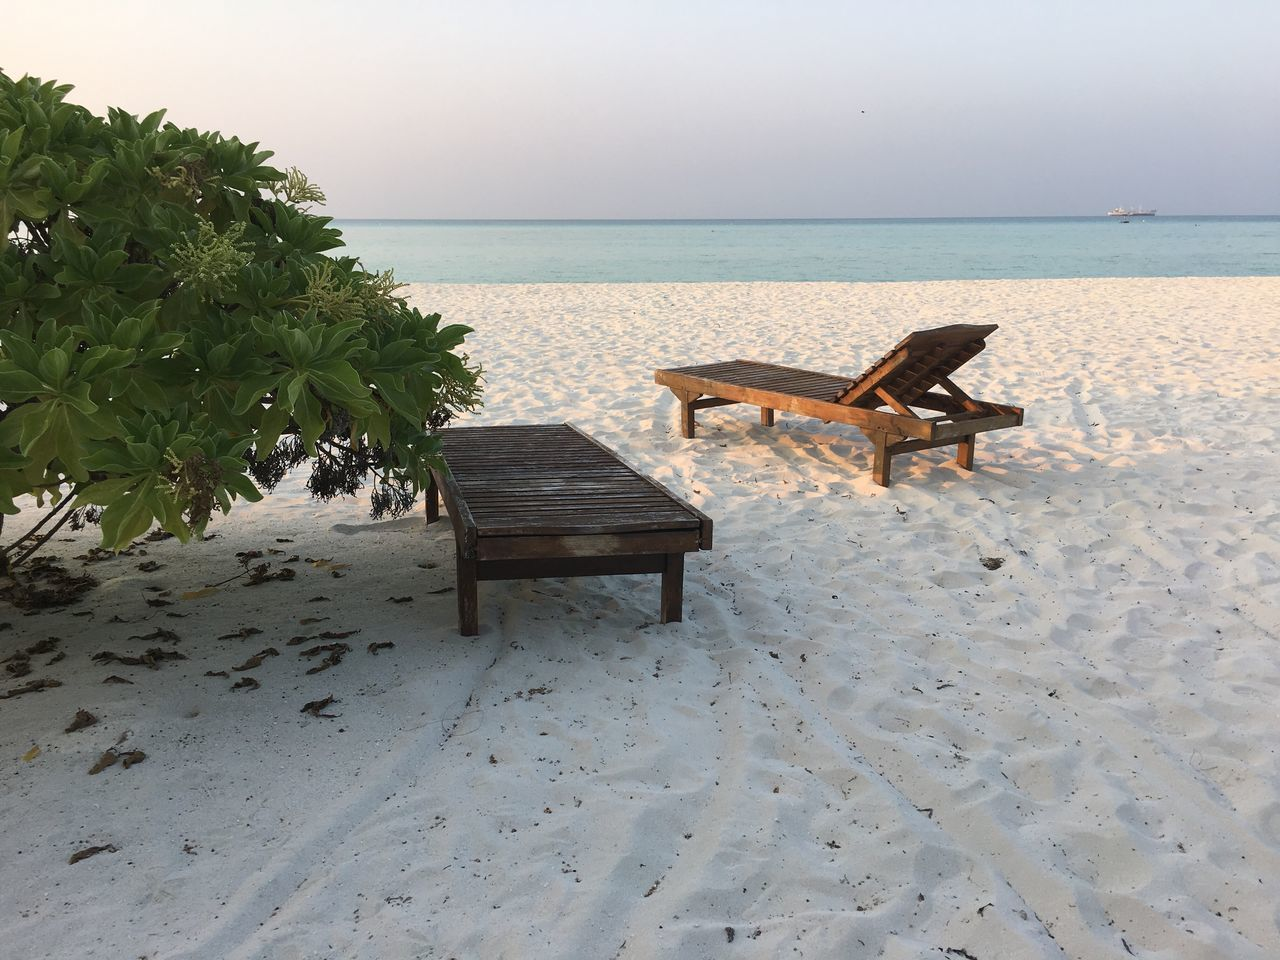 sea, horizon over water, beach, water, nature, sand, table, scenics, chair, tranquility, beauty in nature, tranquil scene, no people, outdoors, clear sky, day, sky